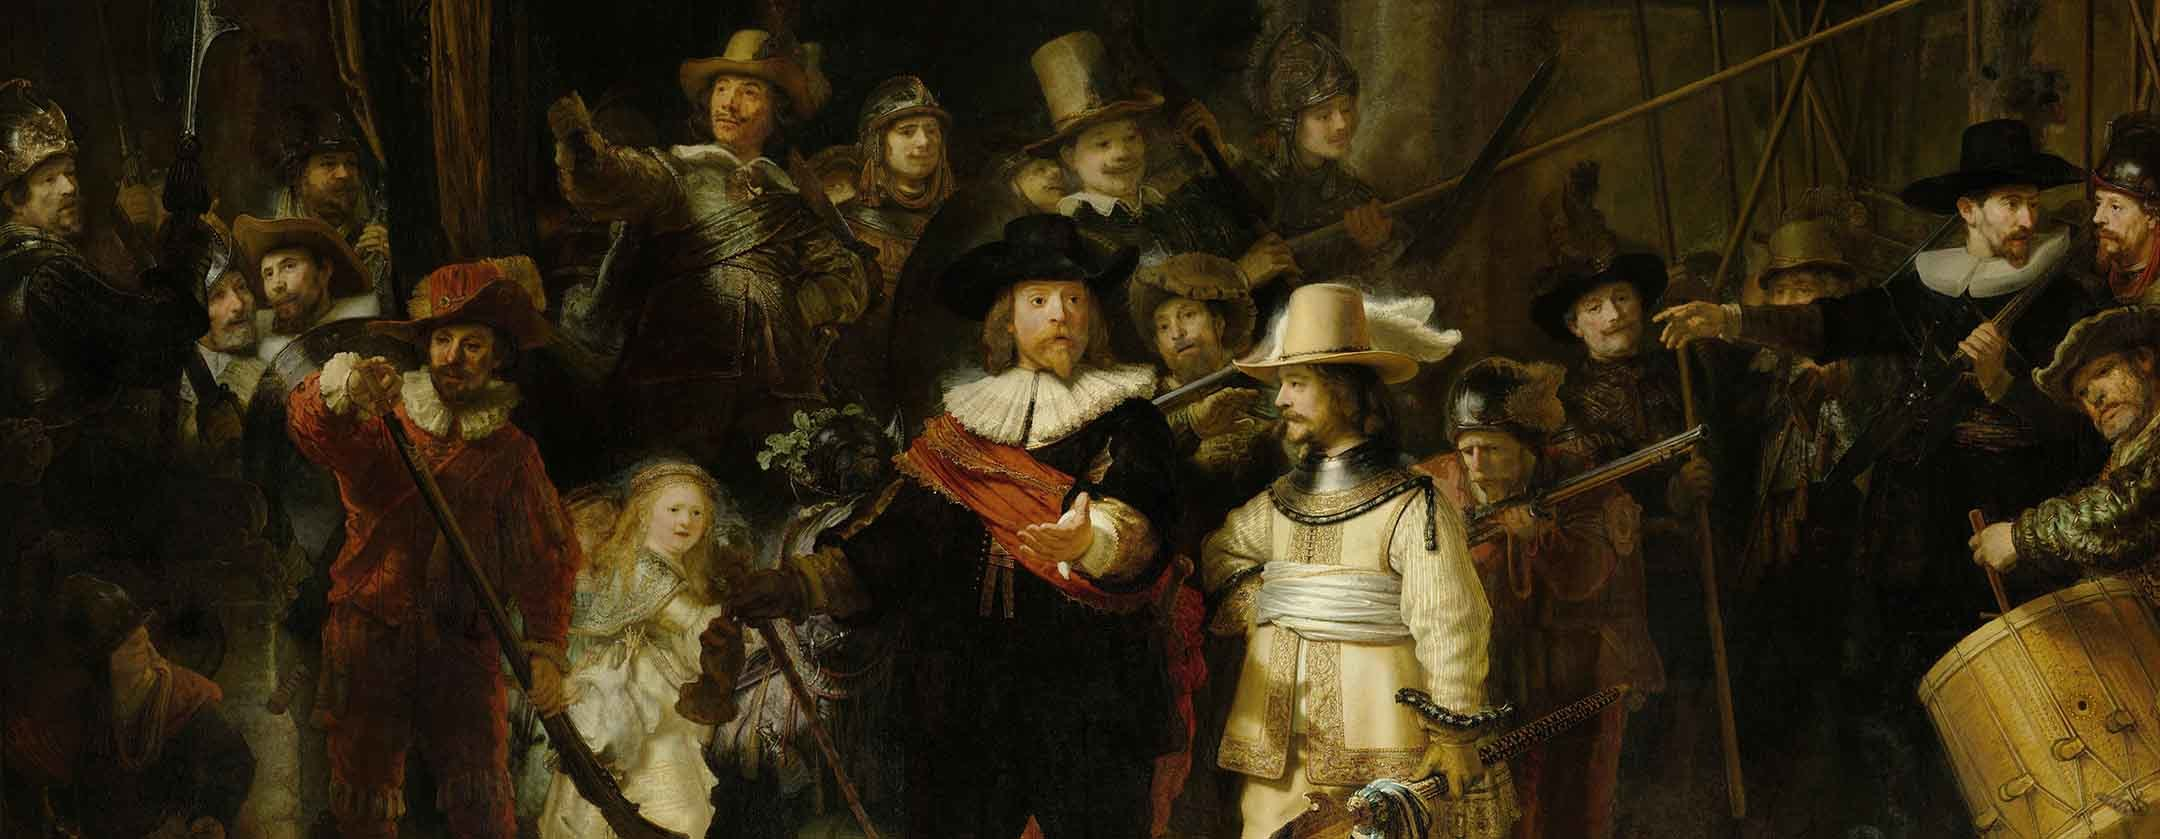 Rembrandt The Nightwatch By Rembrandt